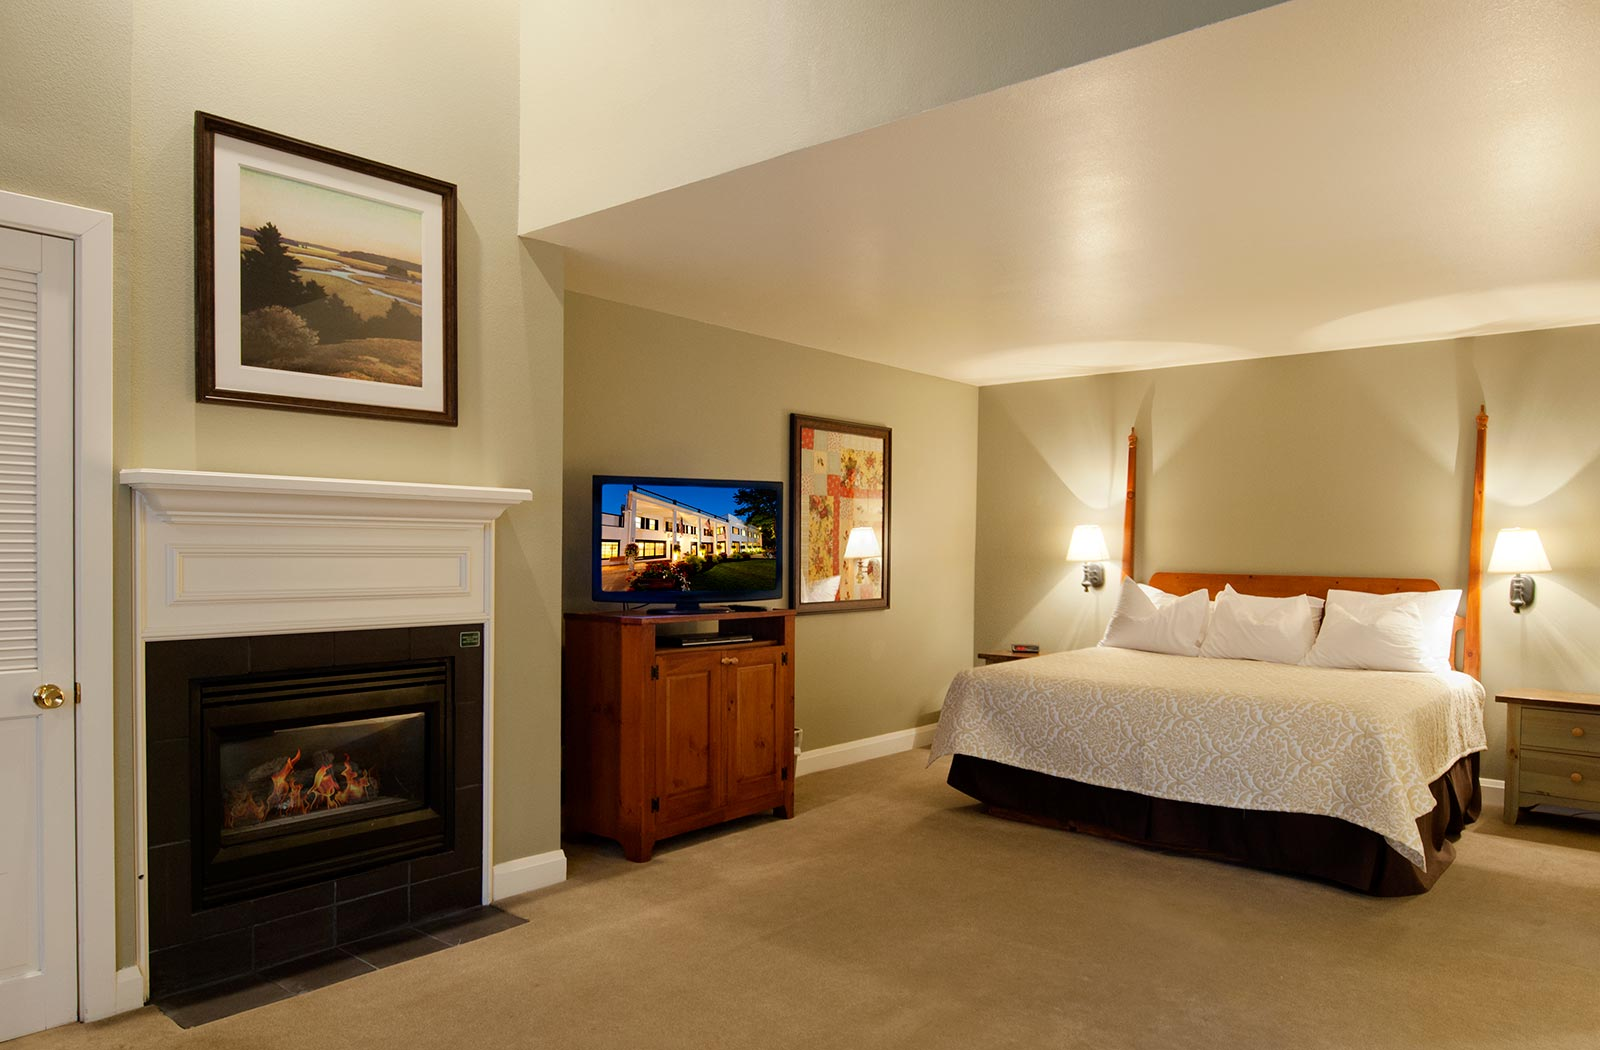 Luxury Suite Midway Utah hotel room with large bed and private fireplace